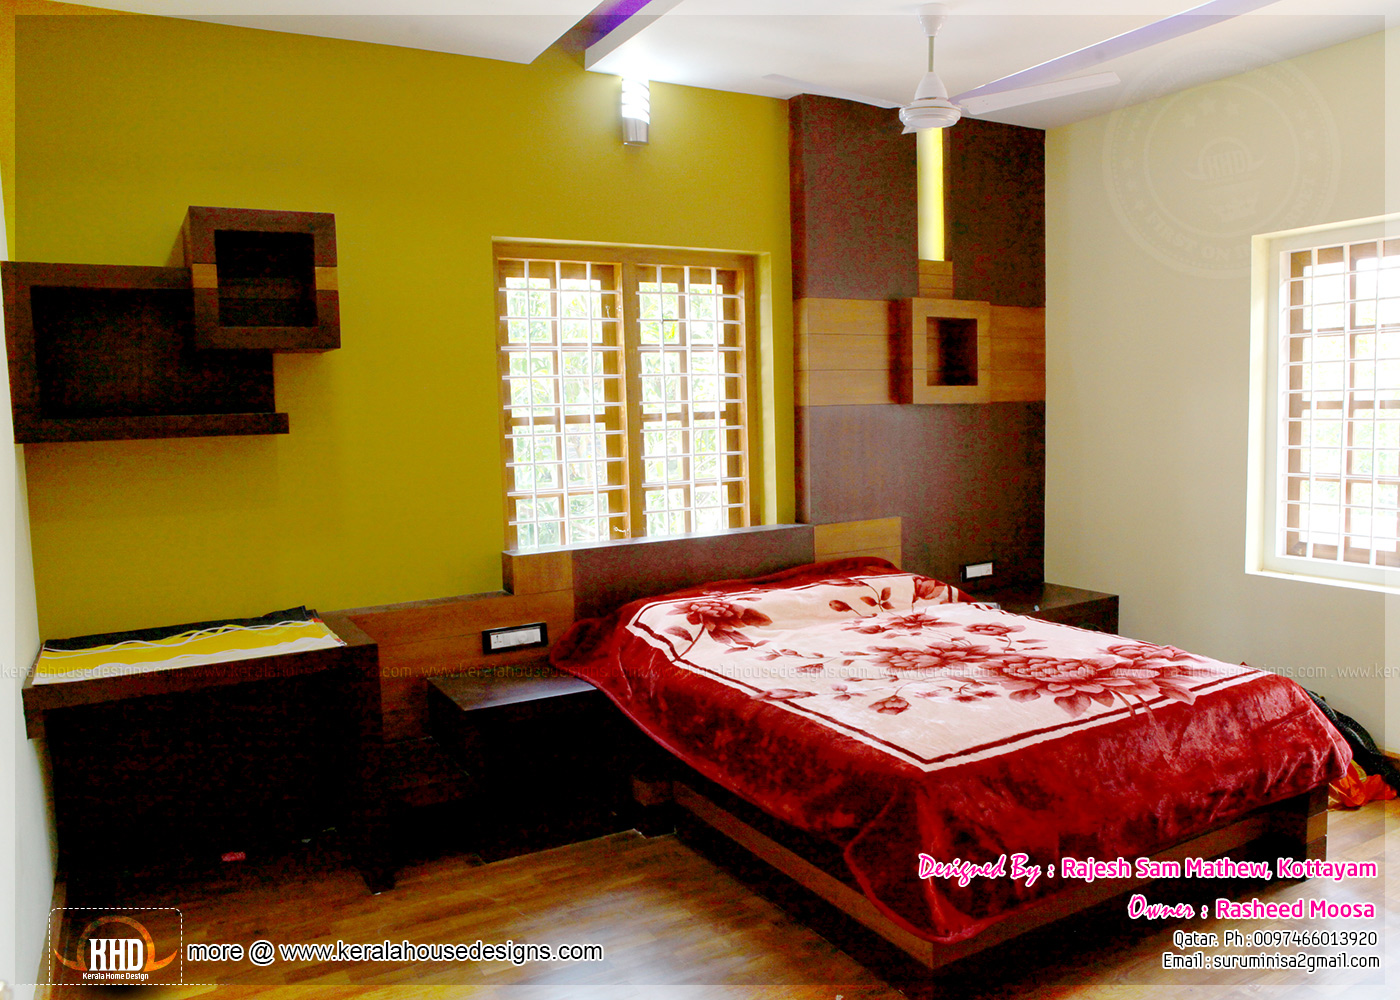 Kerala interior design with photos home kerala plans Low cost interior design ideas india